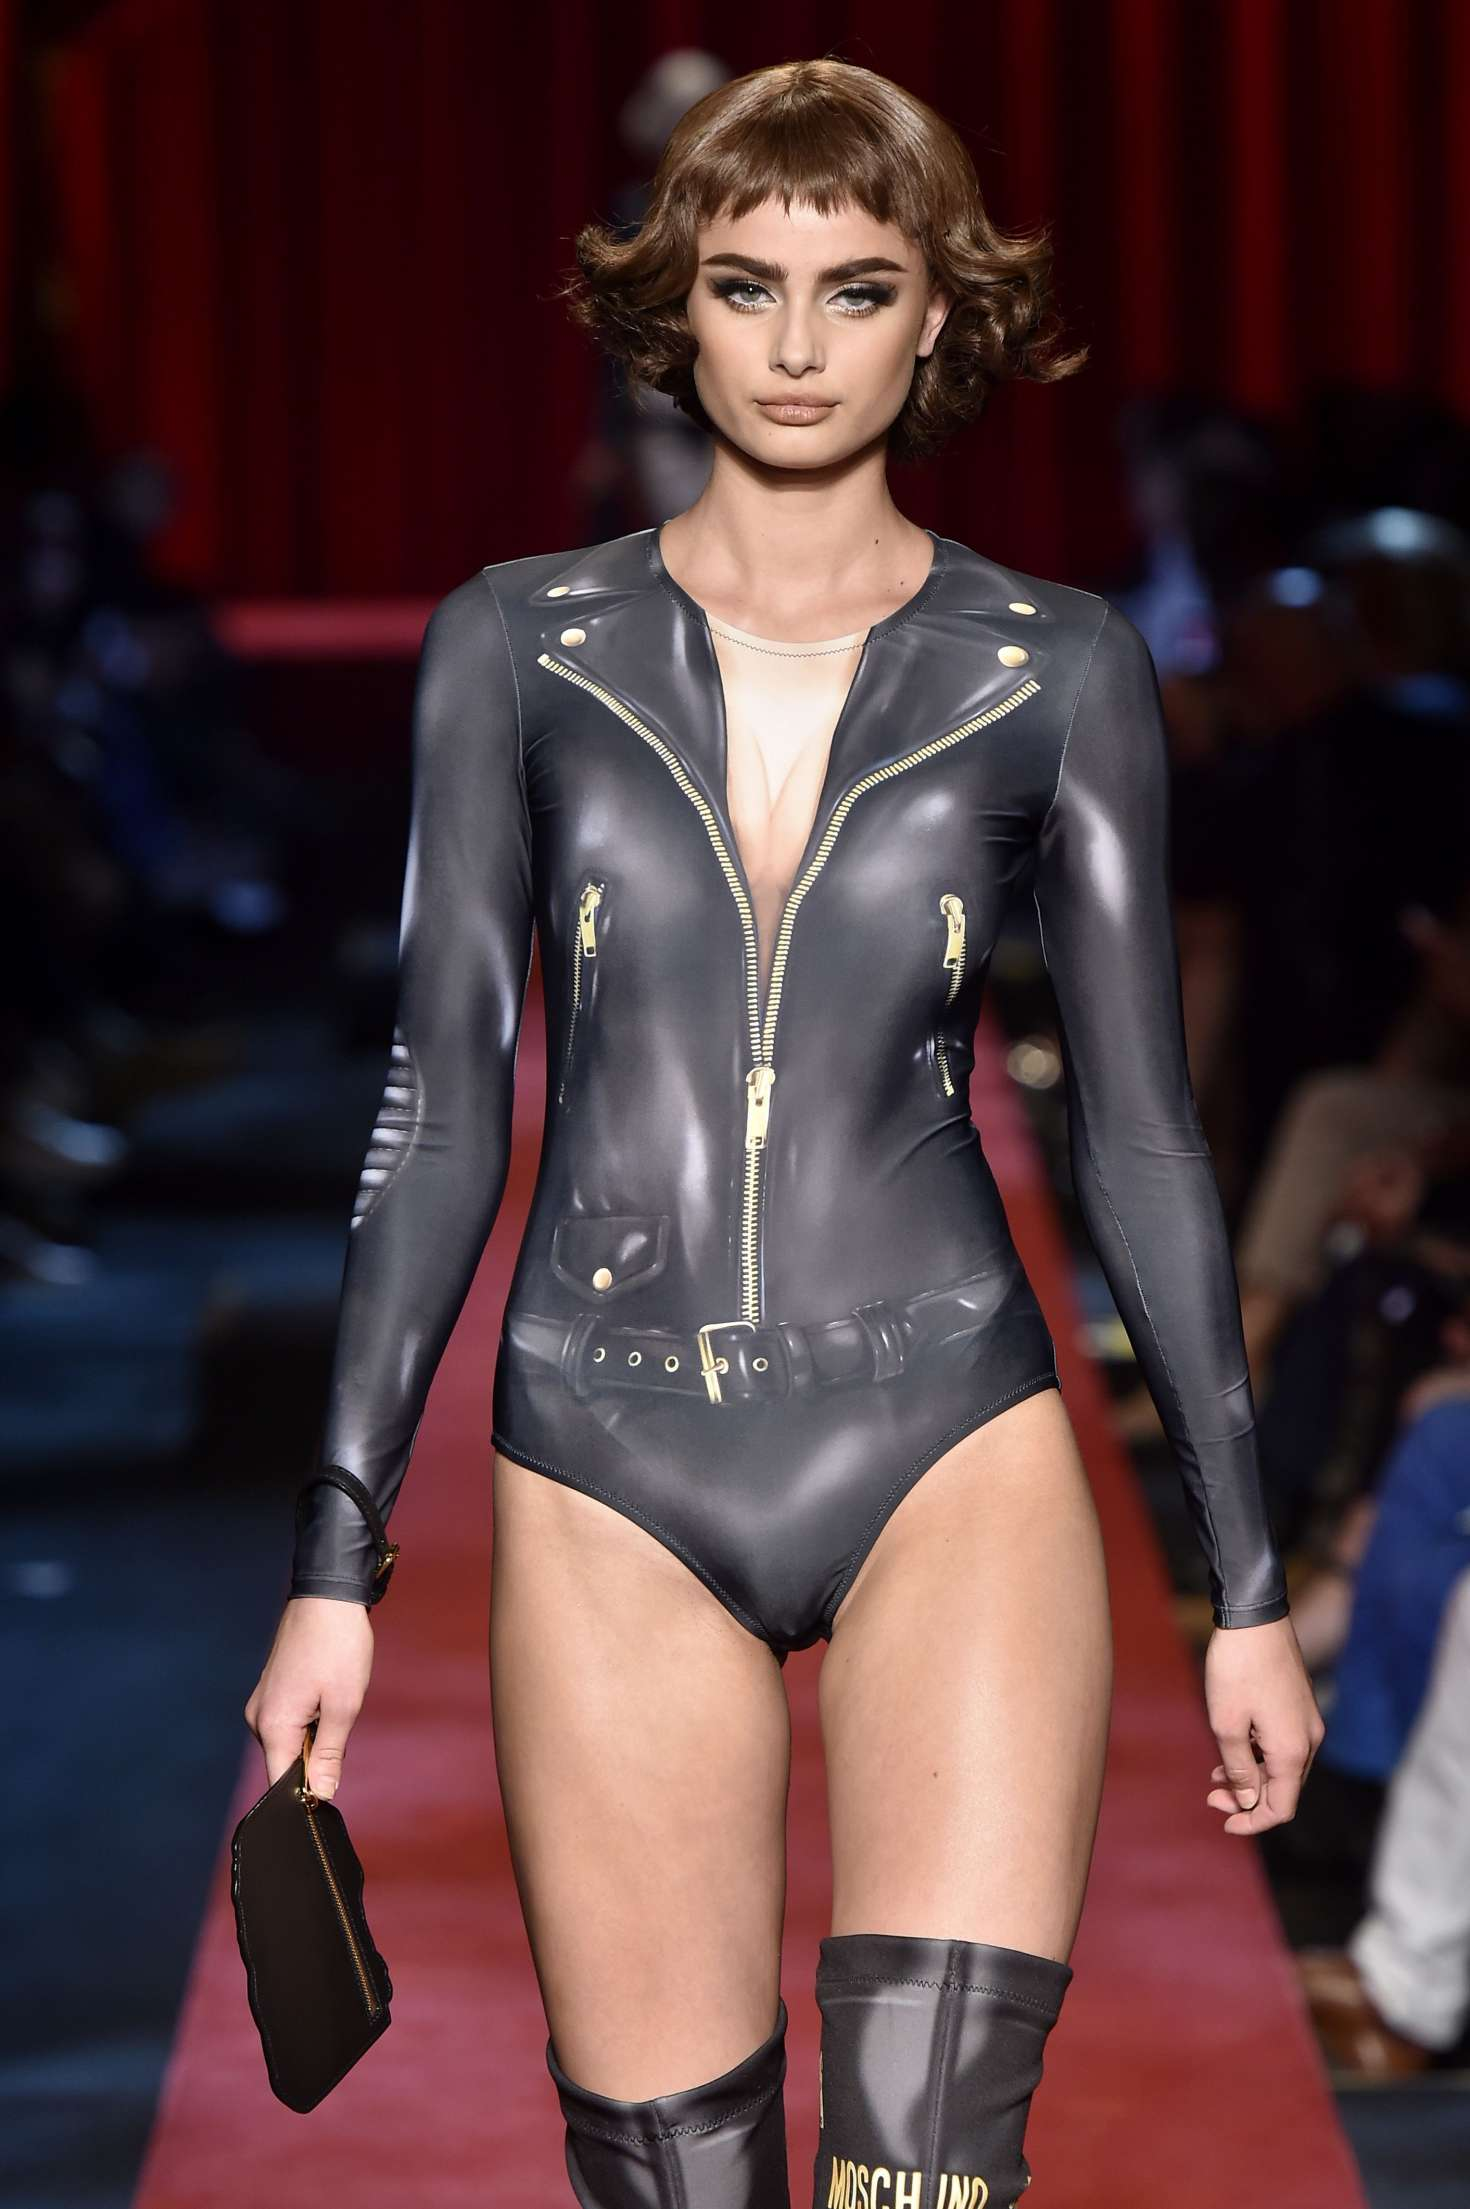 Taylor Hill - Moschino Show 2017 at Milan Fashion Week in Italy